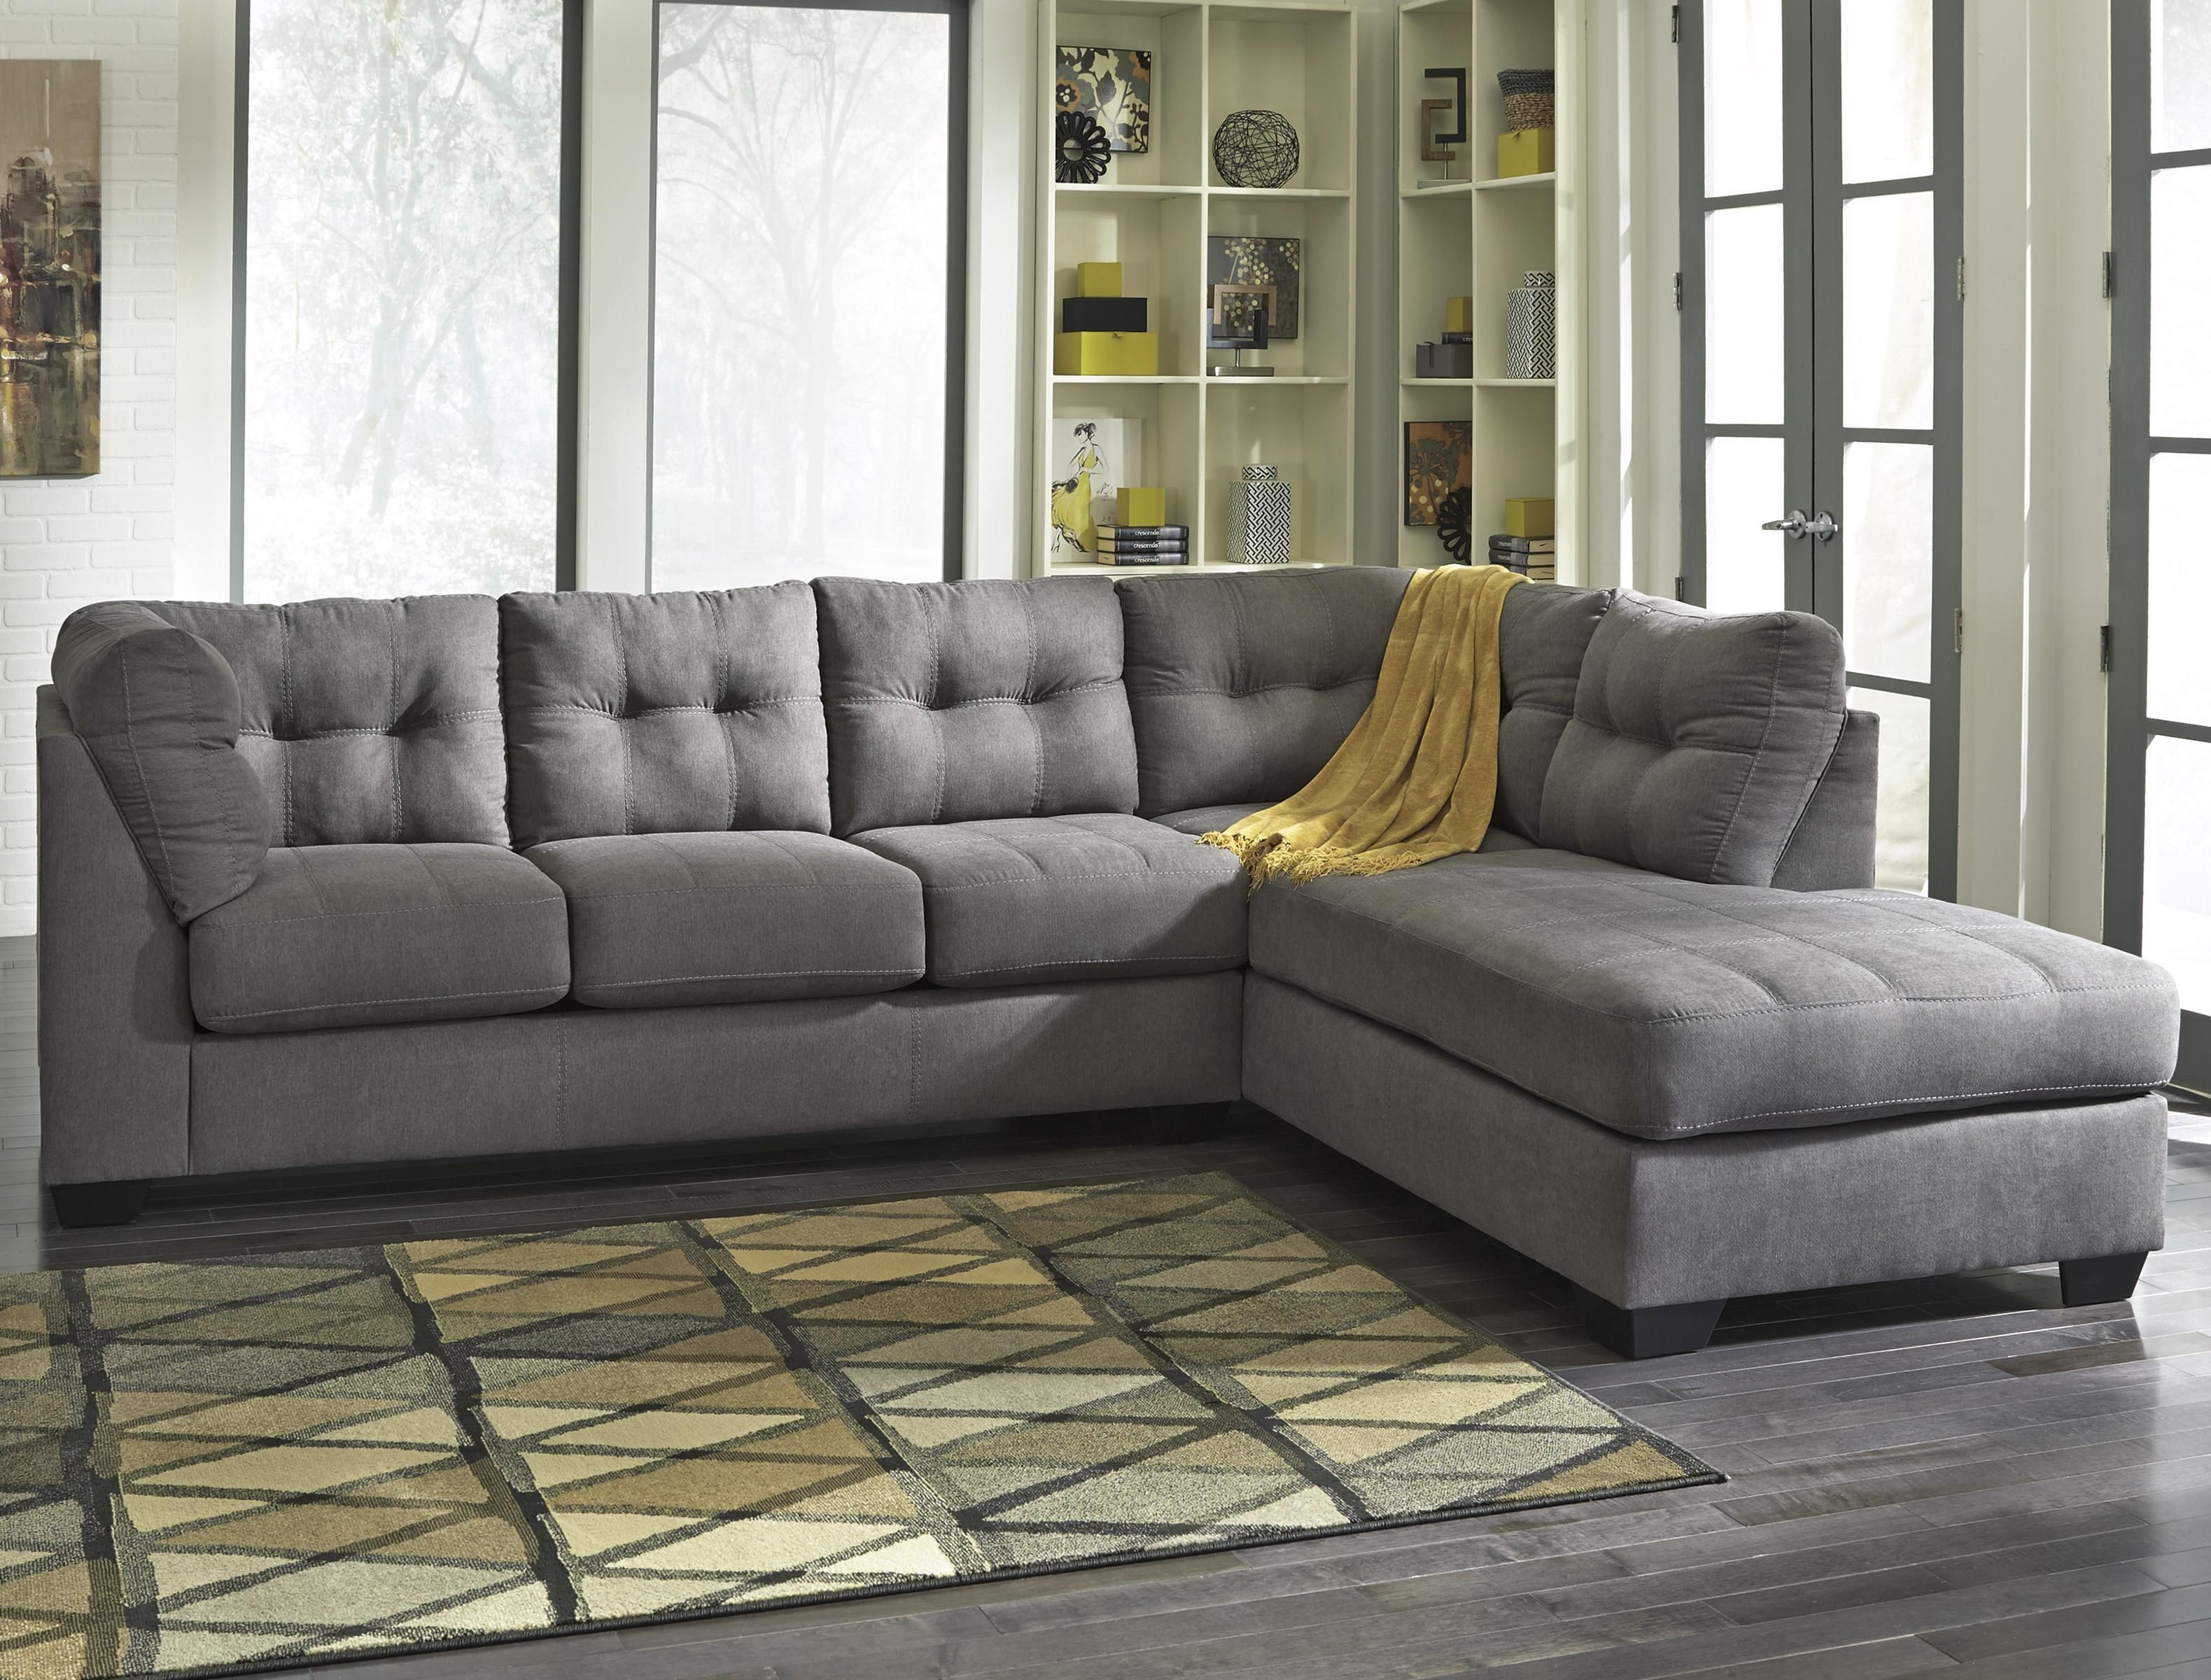 Best Sectional Sofa Fabric Architecture